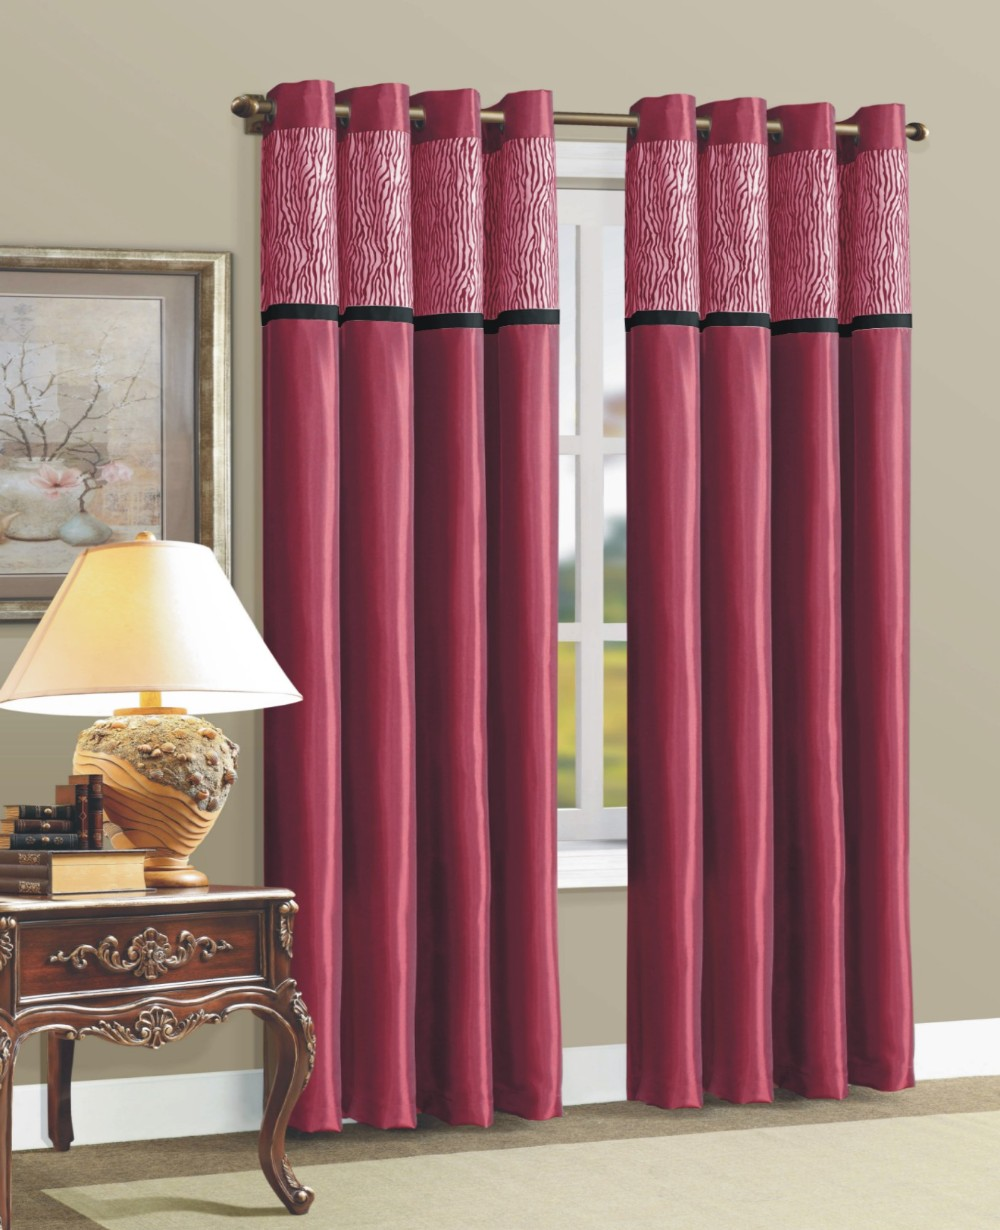 Faux Silk Curtains 1pc Faux Silk Solid Panel Curtains Designs With 8 Grommets Living Room Curtains Buy Living Room Curtains Silk Curtains Curtain Silk Product On